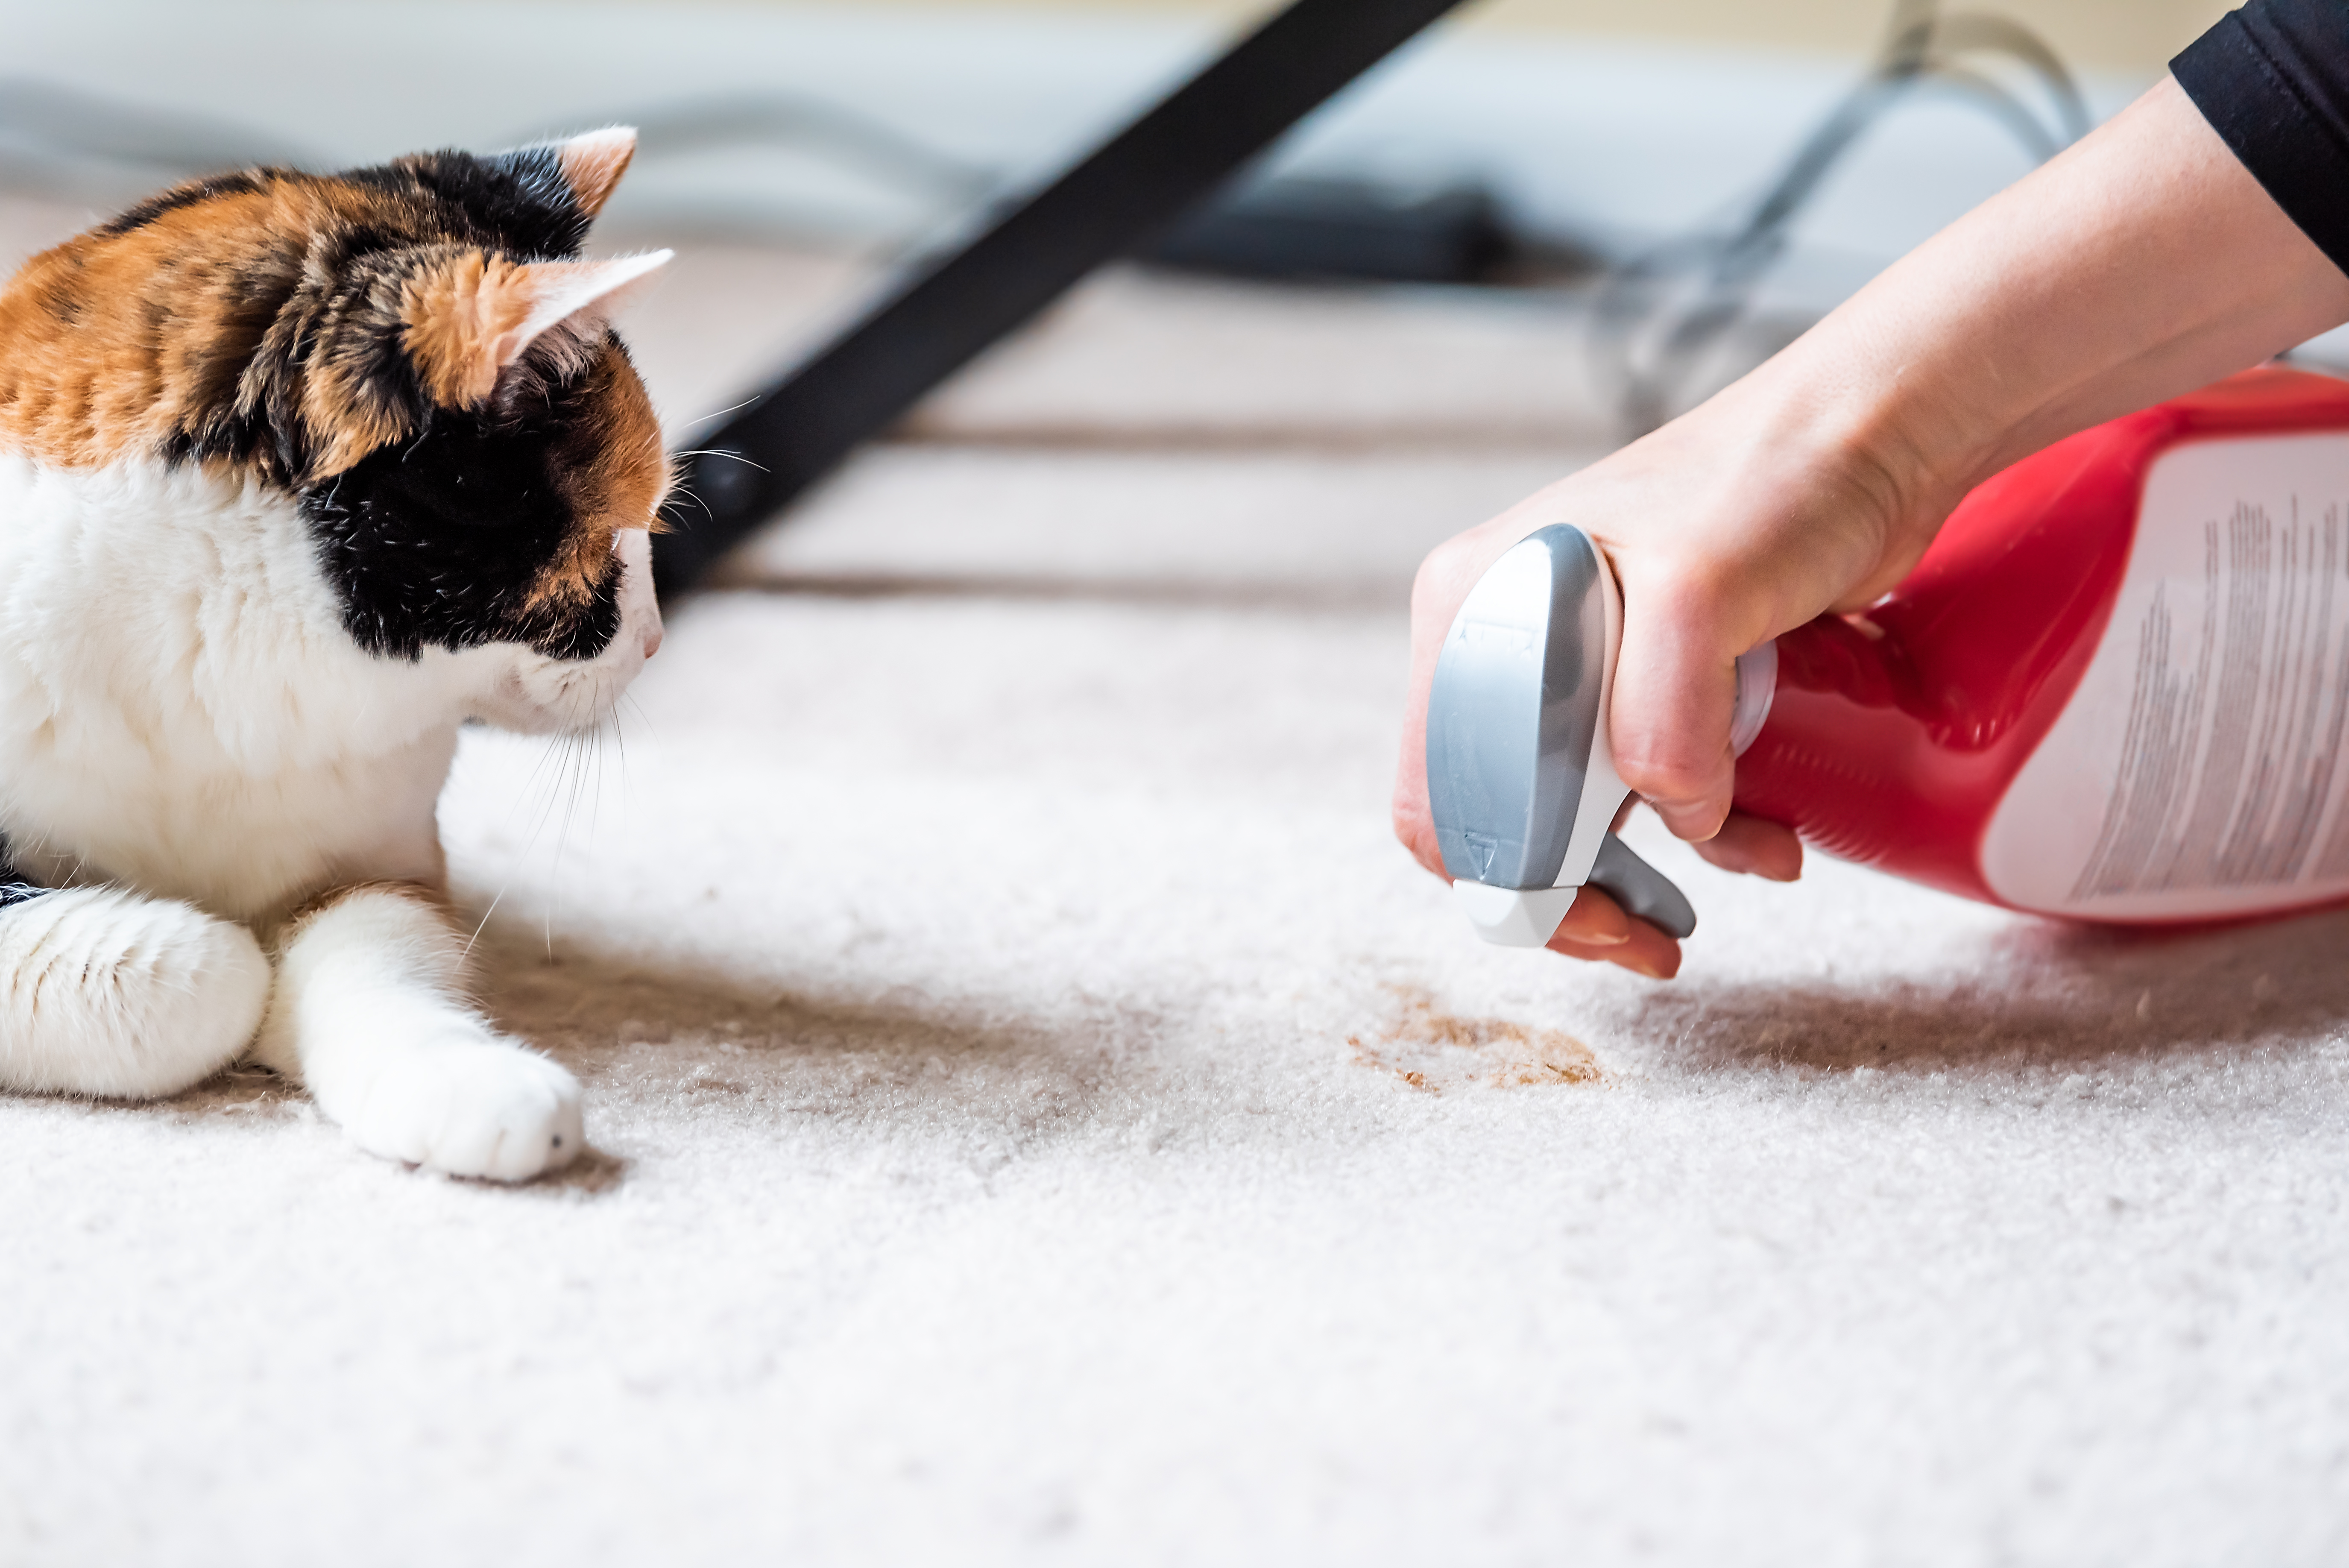 how to potty train a cat deal with accidents